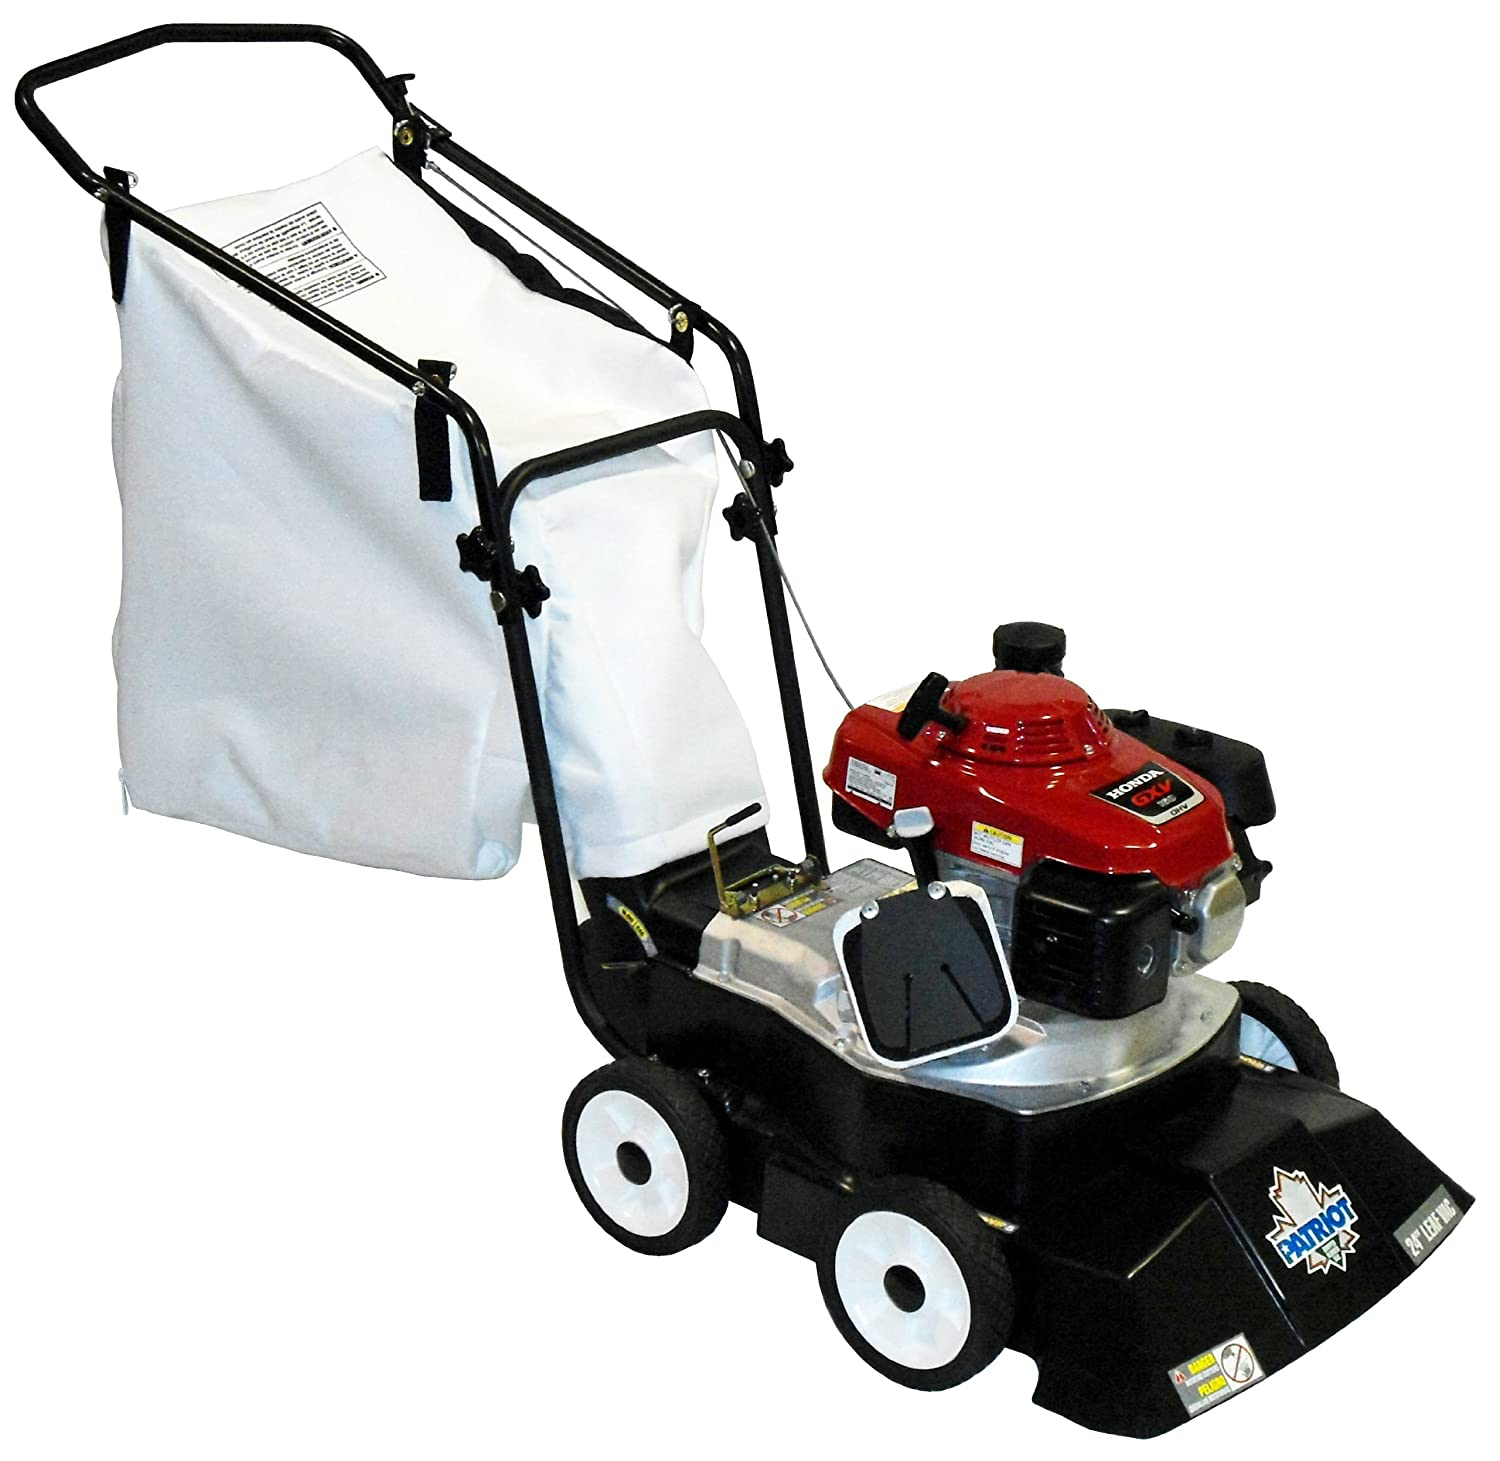 Amazon patriot products cbv 2455h 24 inch honda gas powered amazon patriot products cbv 2455h 24 inch honda gas powered walk behind 3 in 1 leaf vacuumchipperblower lawn and garden chippers garden publicscrutiny Gallery